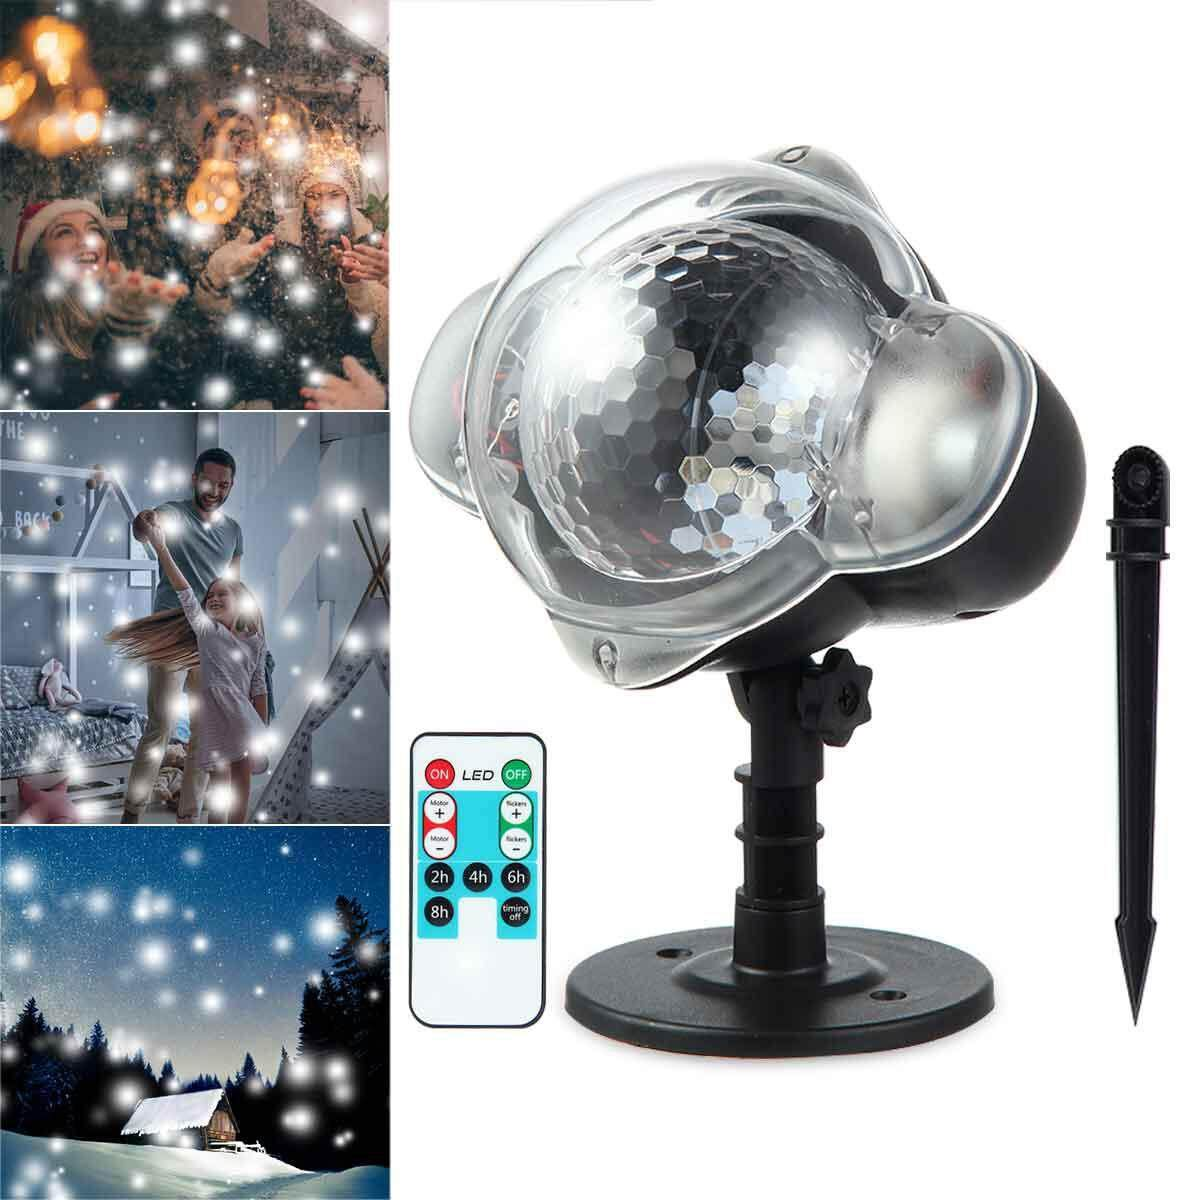 Buy House Lighting Online At Best Price In Malaysia Lazada Wiring Lampu Kalimantang Umiwe Led Projector Lights Snowflake Lamp With Wireless Remote Indoor Outdoor Waterproof Snow Falling Landscape